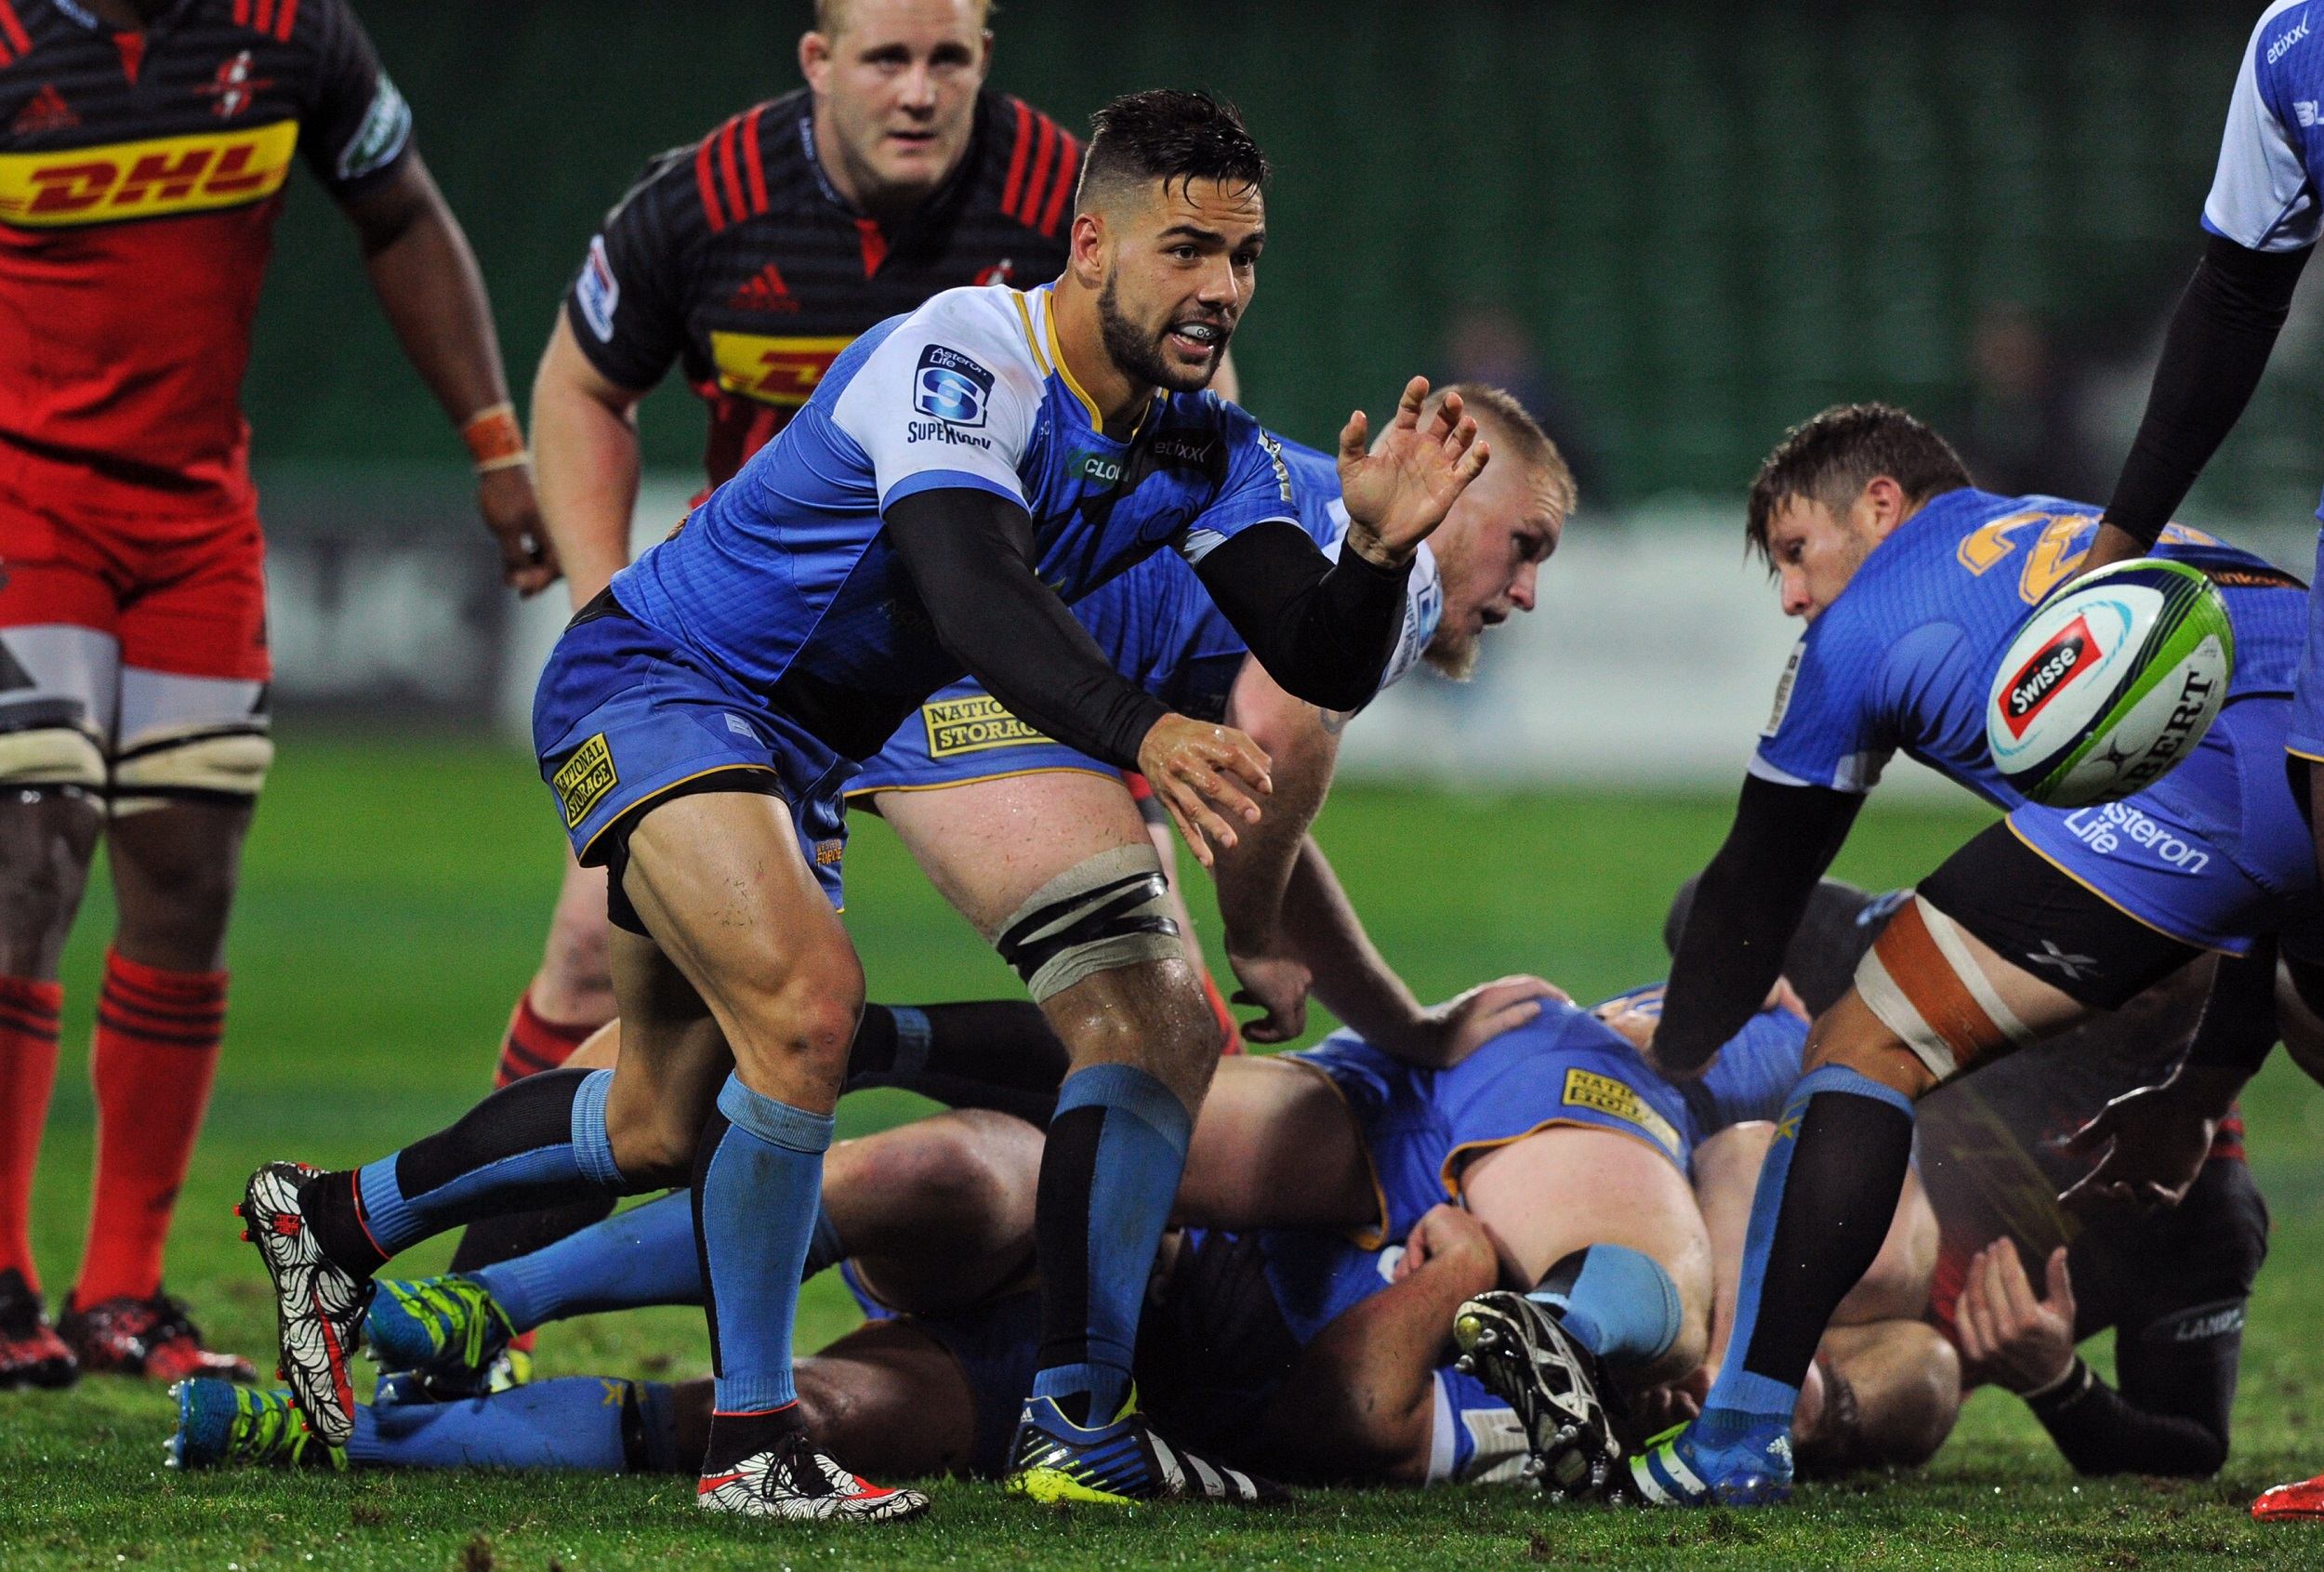 File: The Western Force were seen as surplus to requirements when SANZAAR decided to reduce the competition from an 18-team model to 15 for the 2018 season.